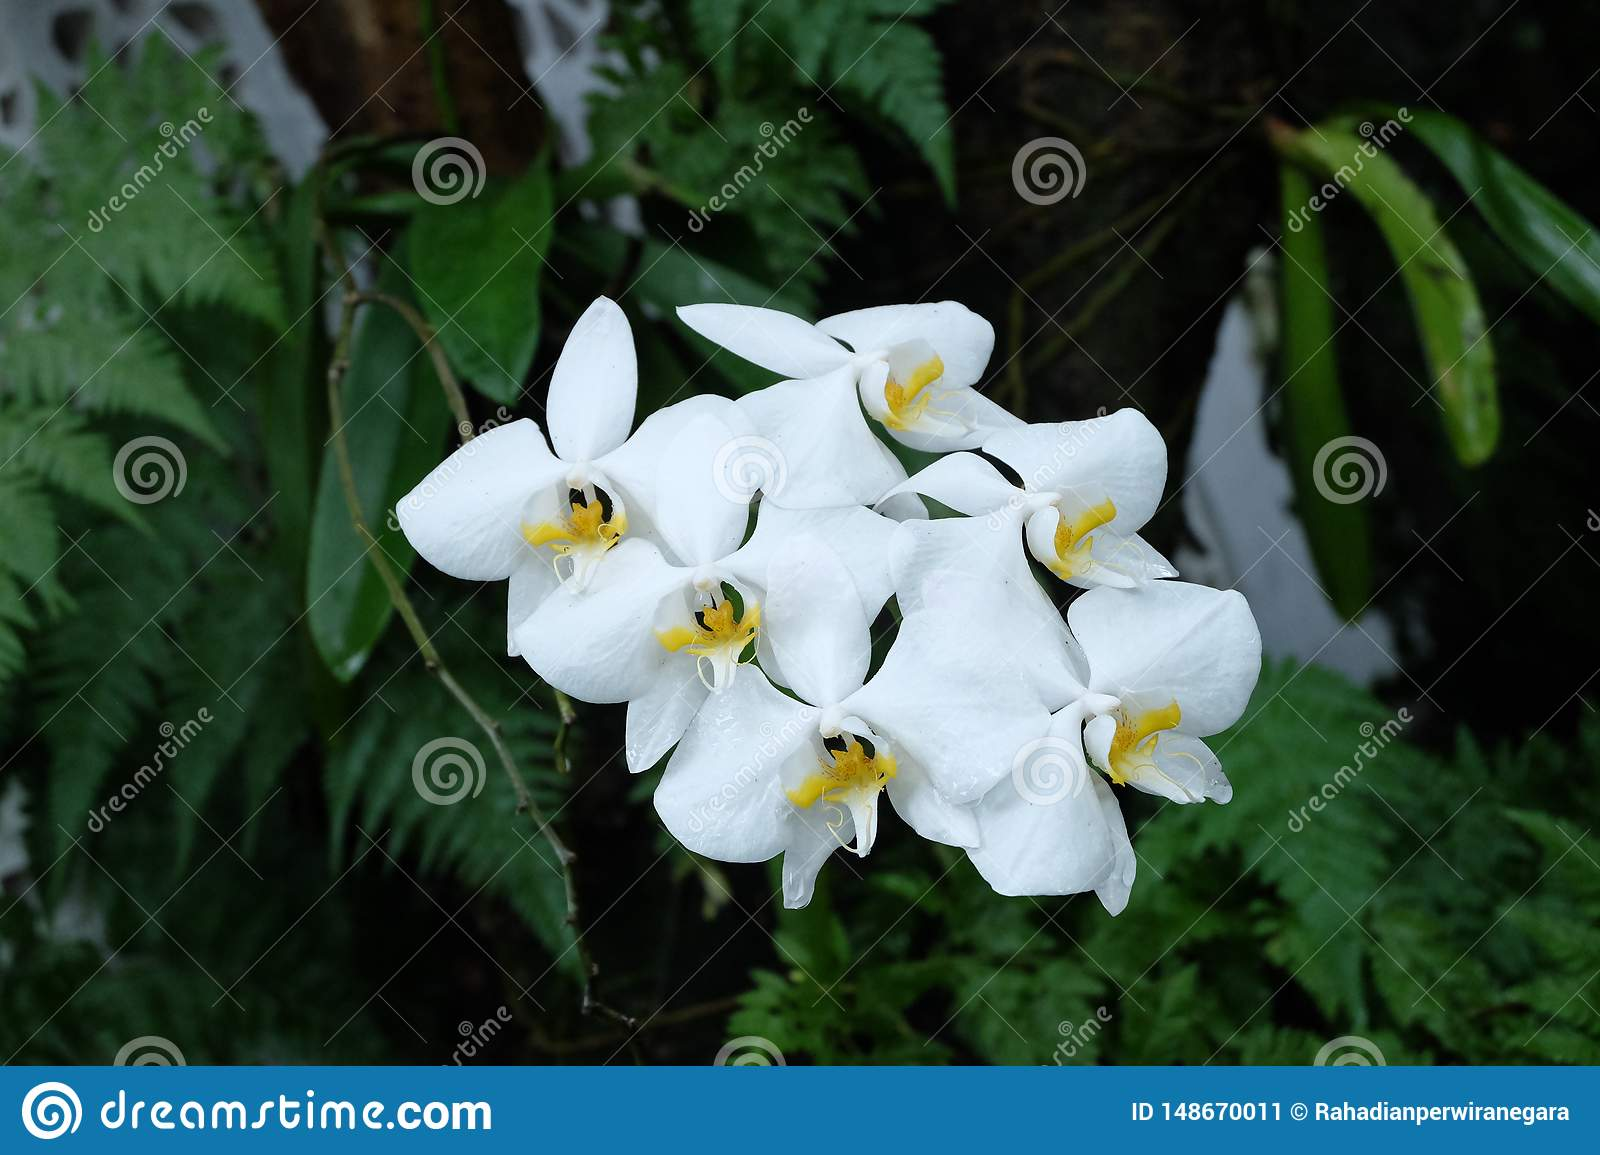 Orchid white moon, Phalaenopsis amabilis, commonly known as the moon orchid or angrek bulan, is a species of flowering plant in